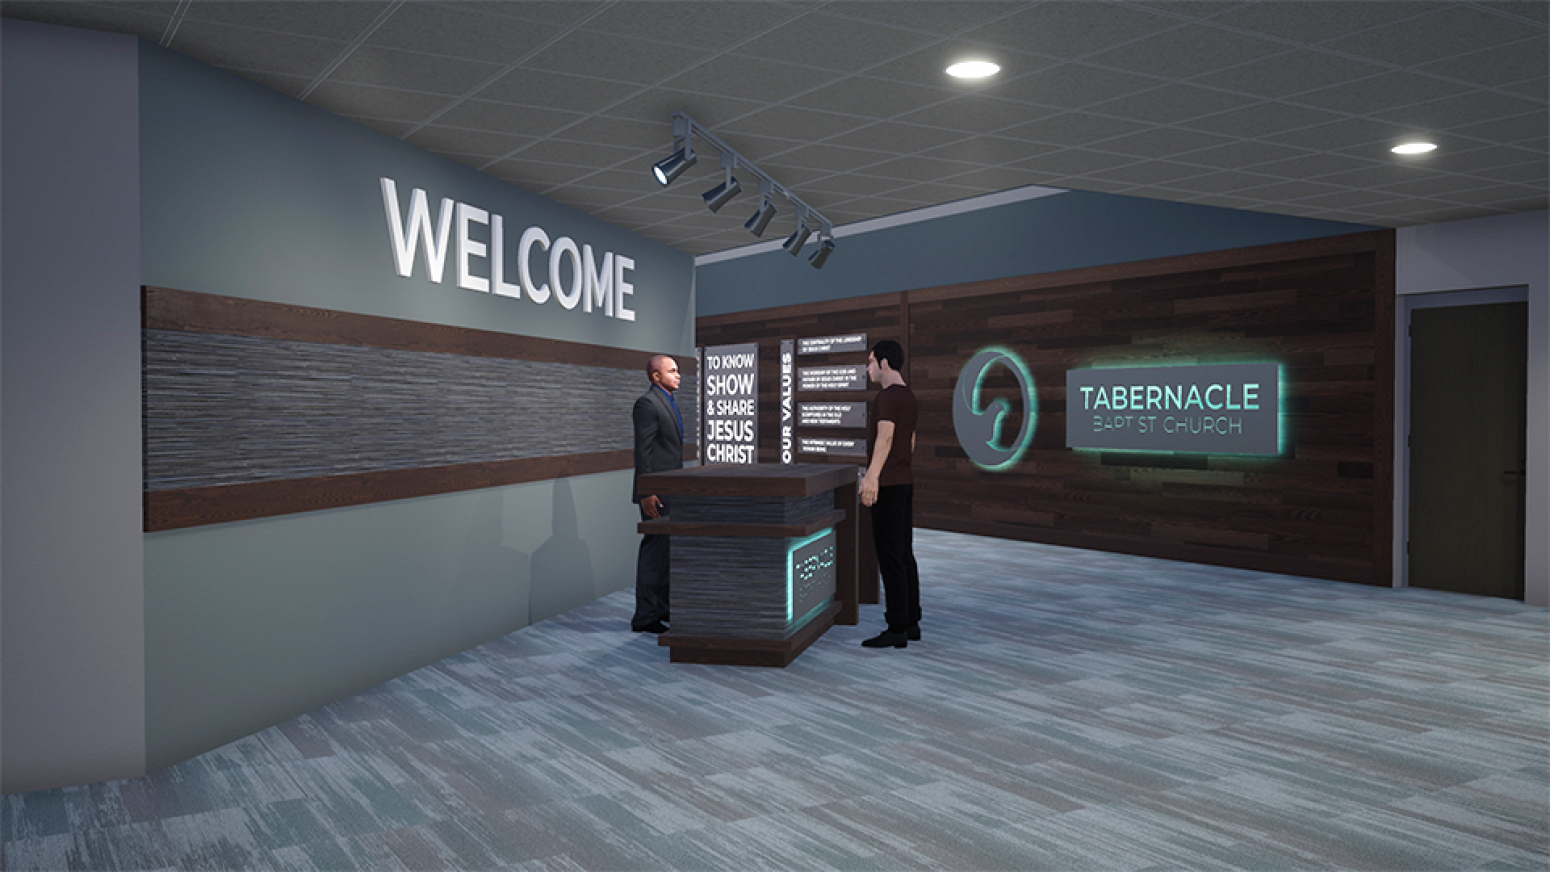 Modern entrance from a church interior design project by Paragon 360.